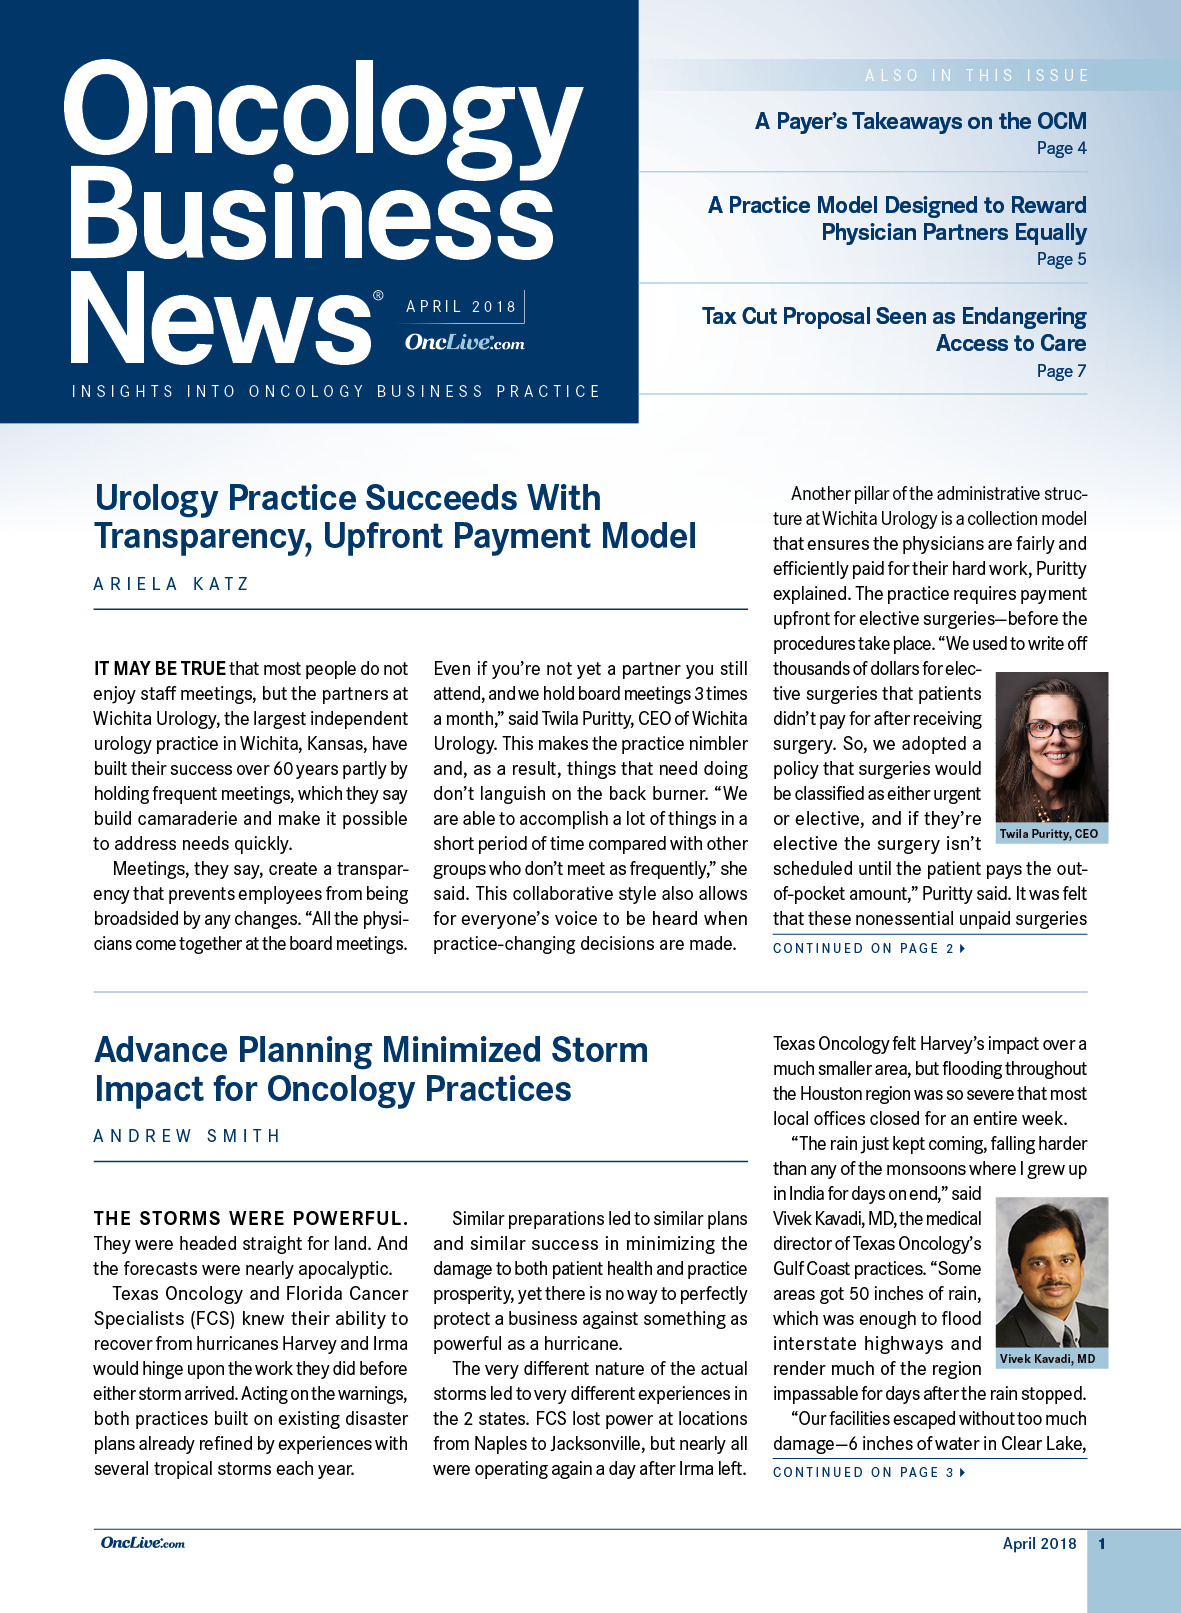 Oncology Business News